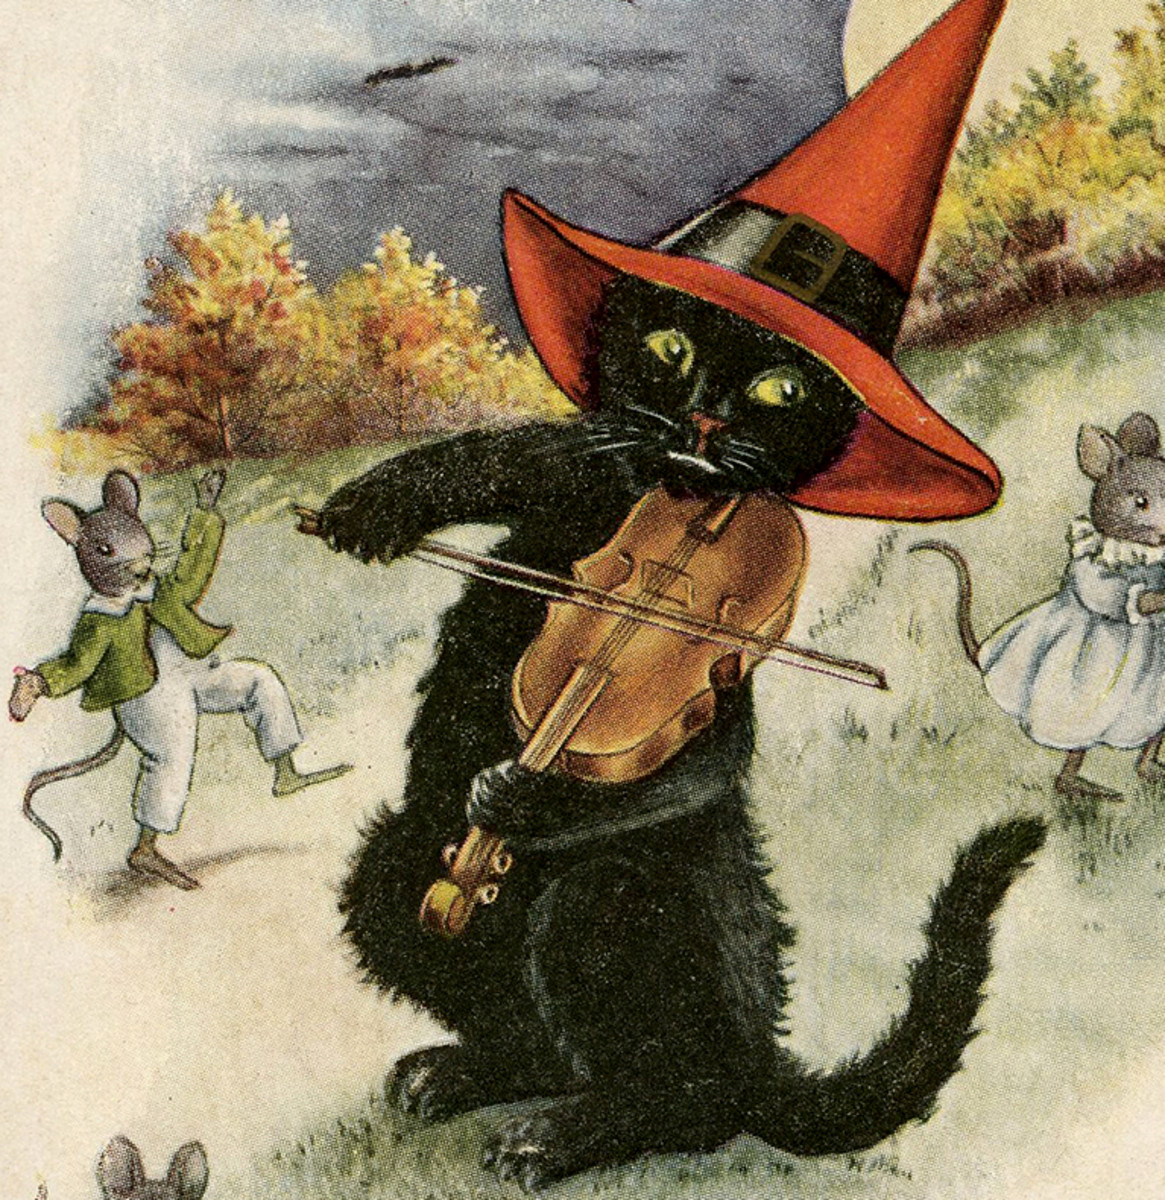 Black cat in a witch's hat, vintage illustration.